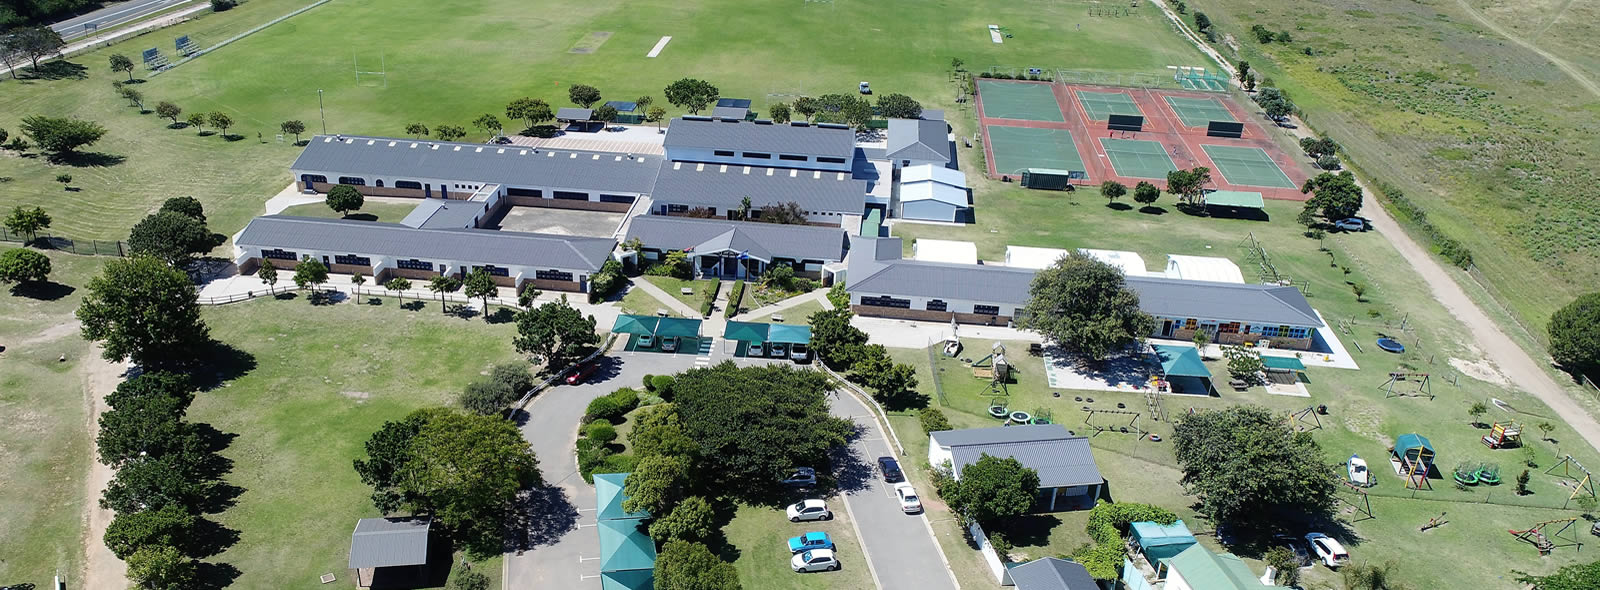 Plettenberg Bay Primary School from the air